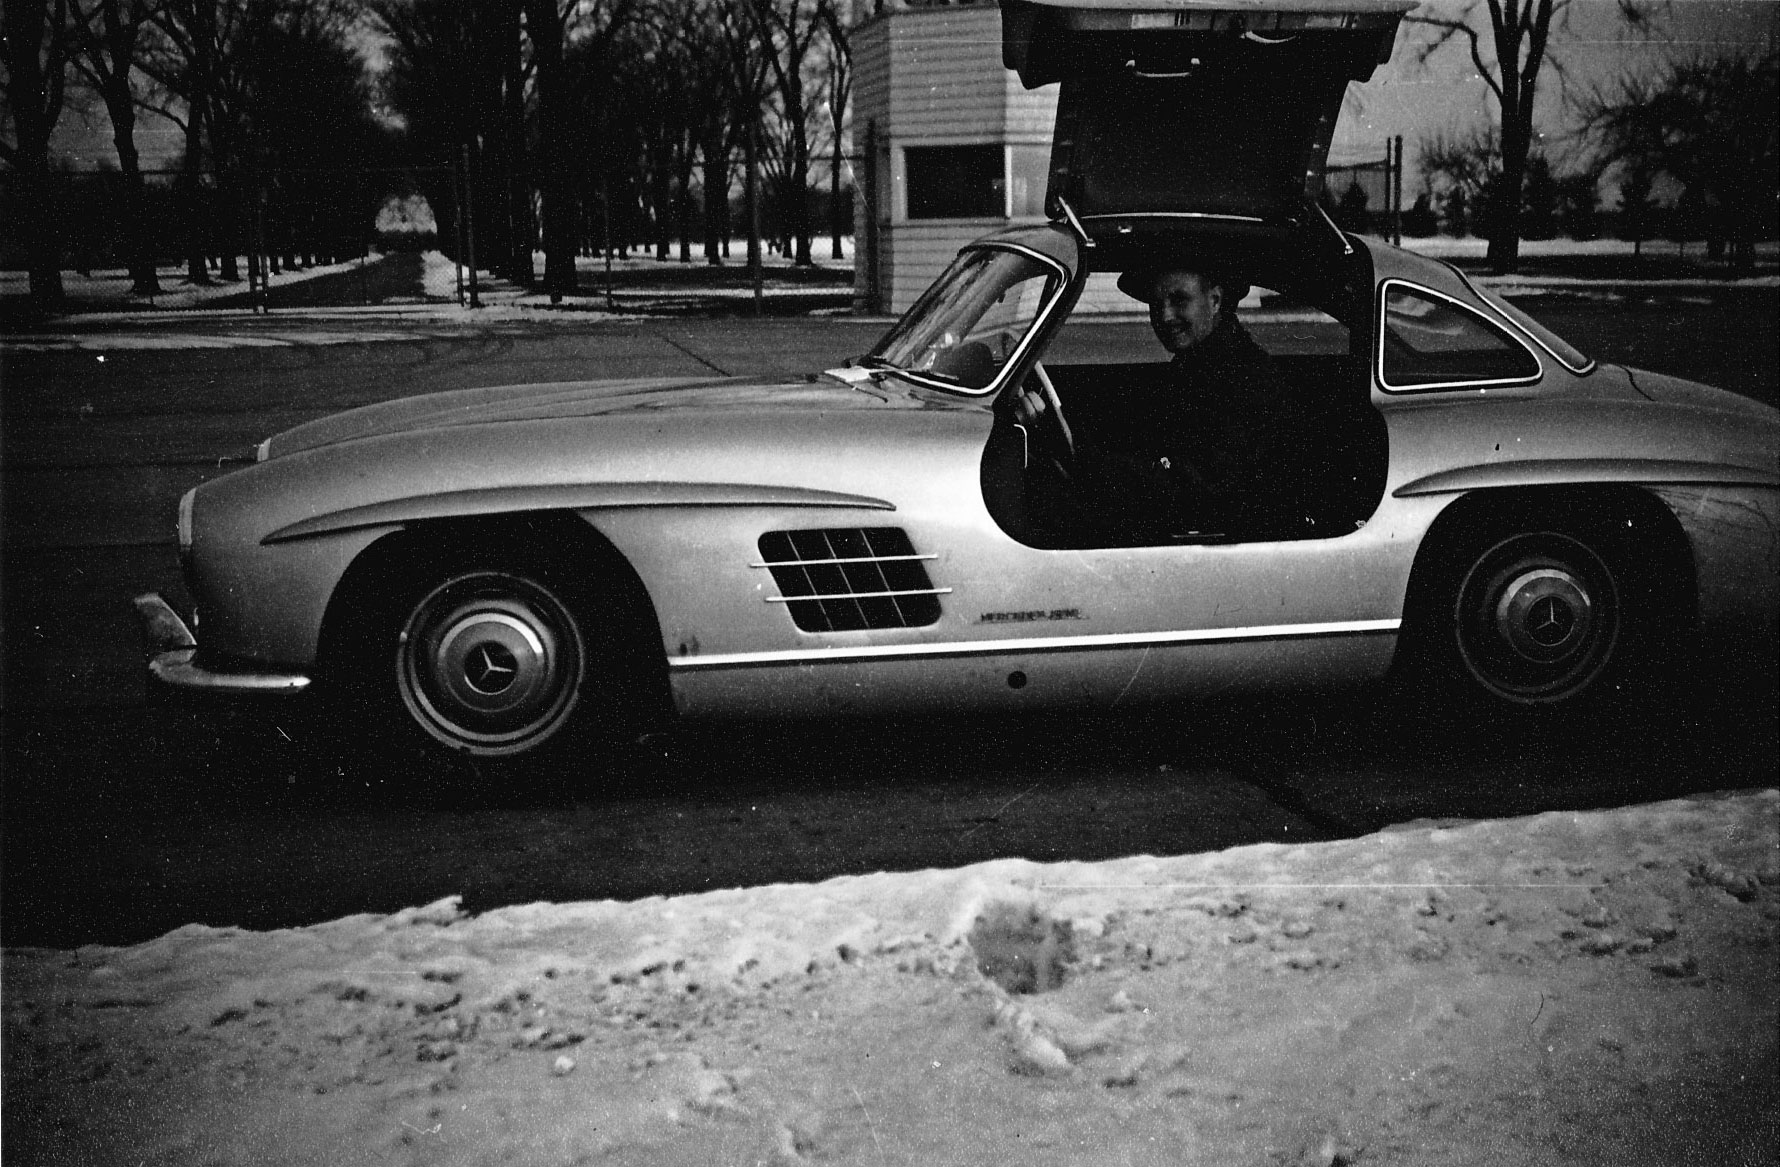 Henry Pringham in the 300 SL Gullwing